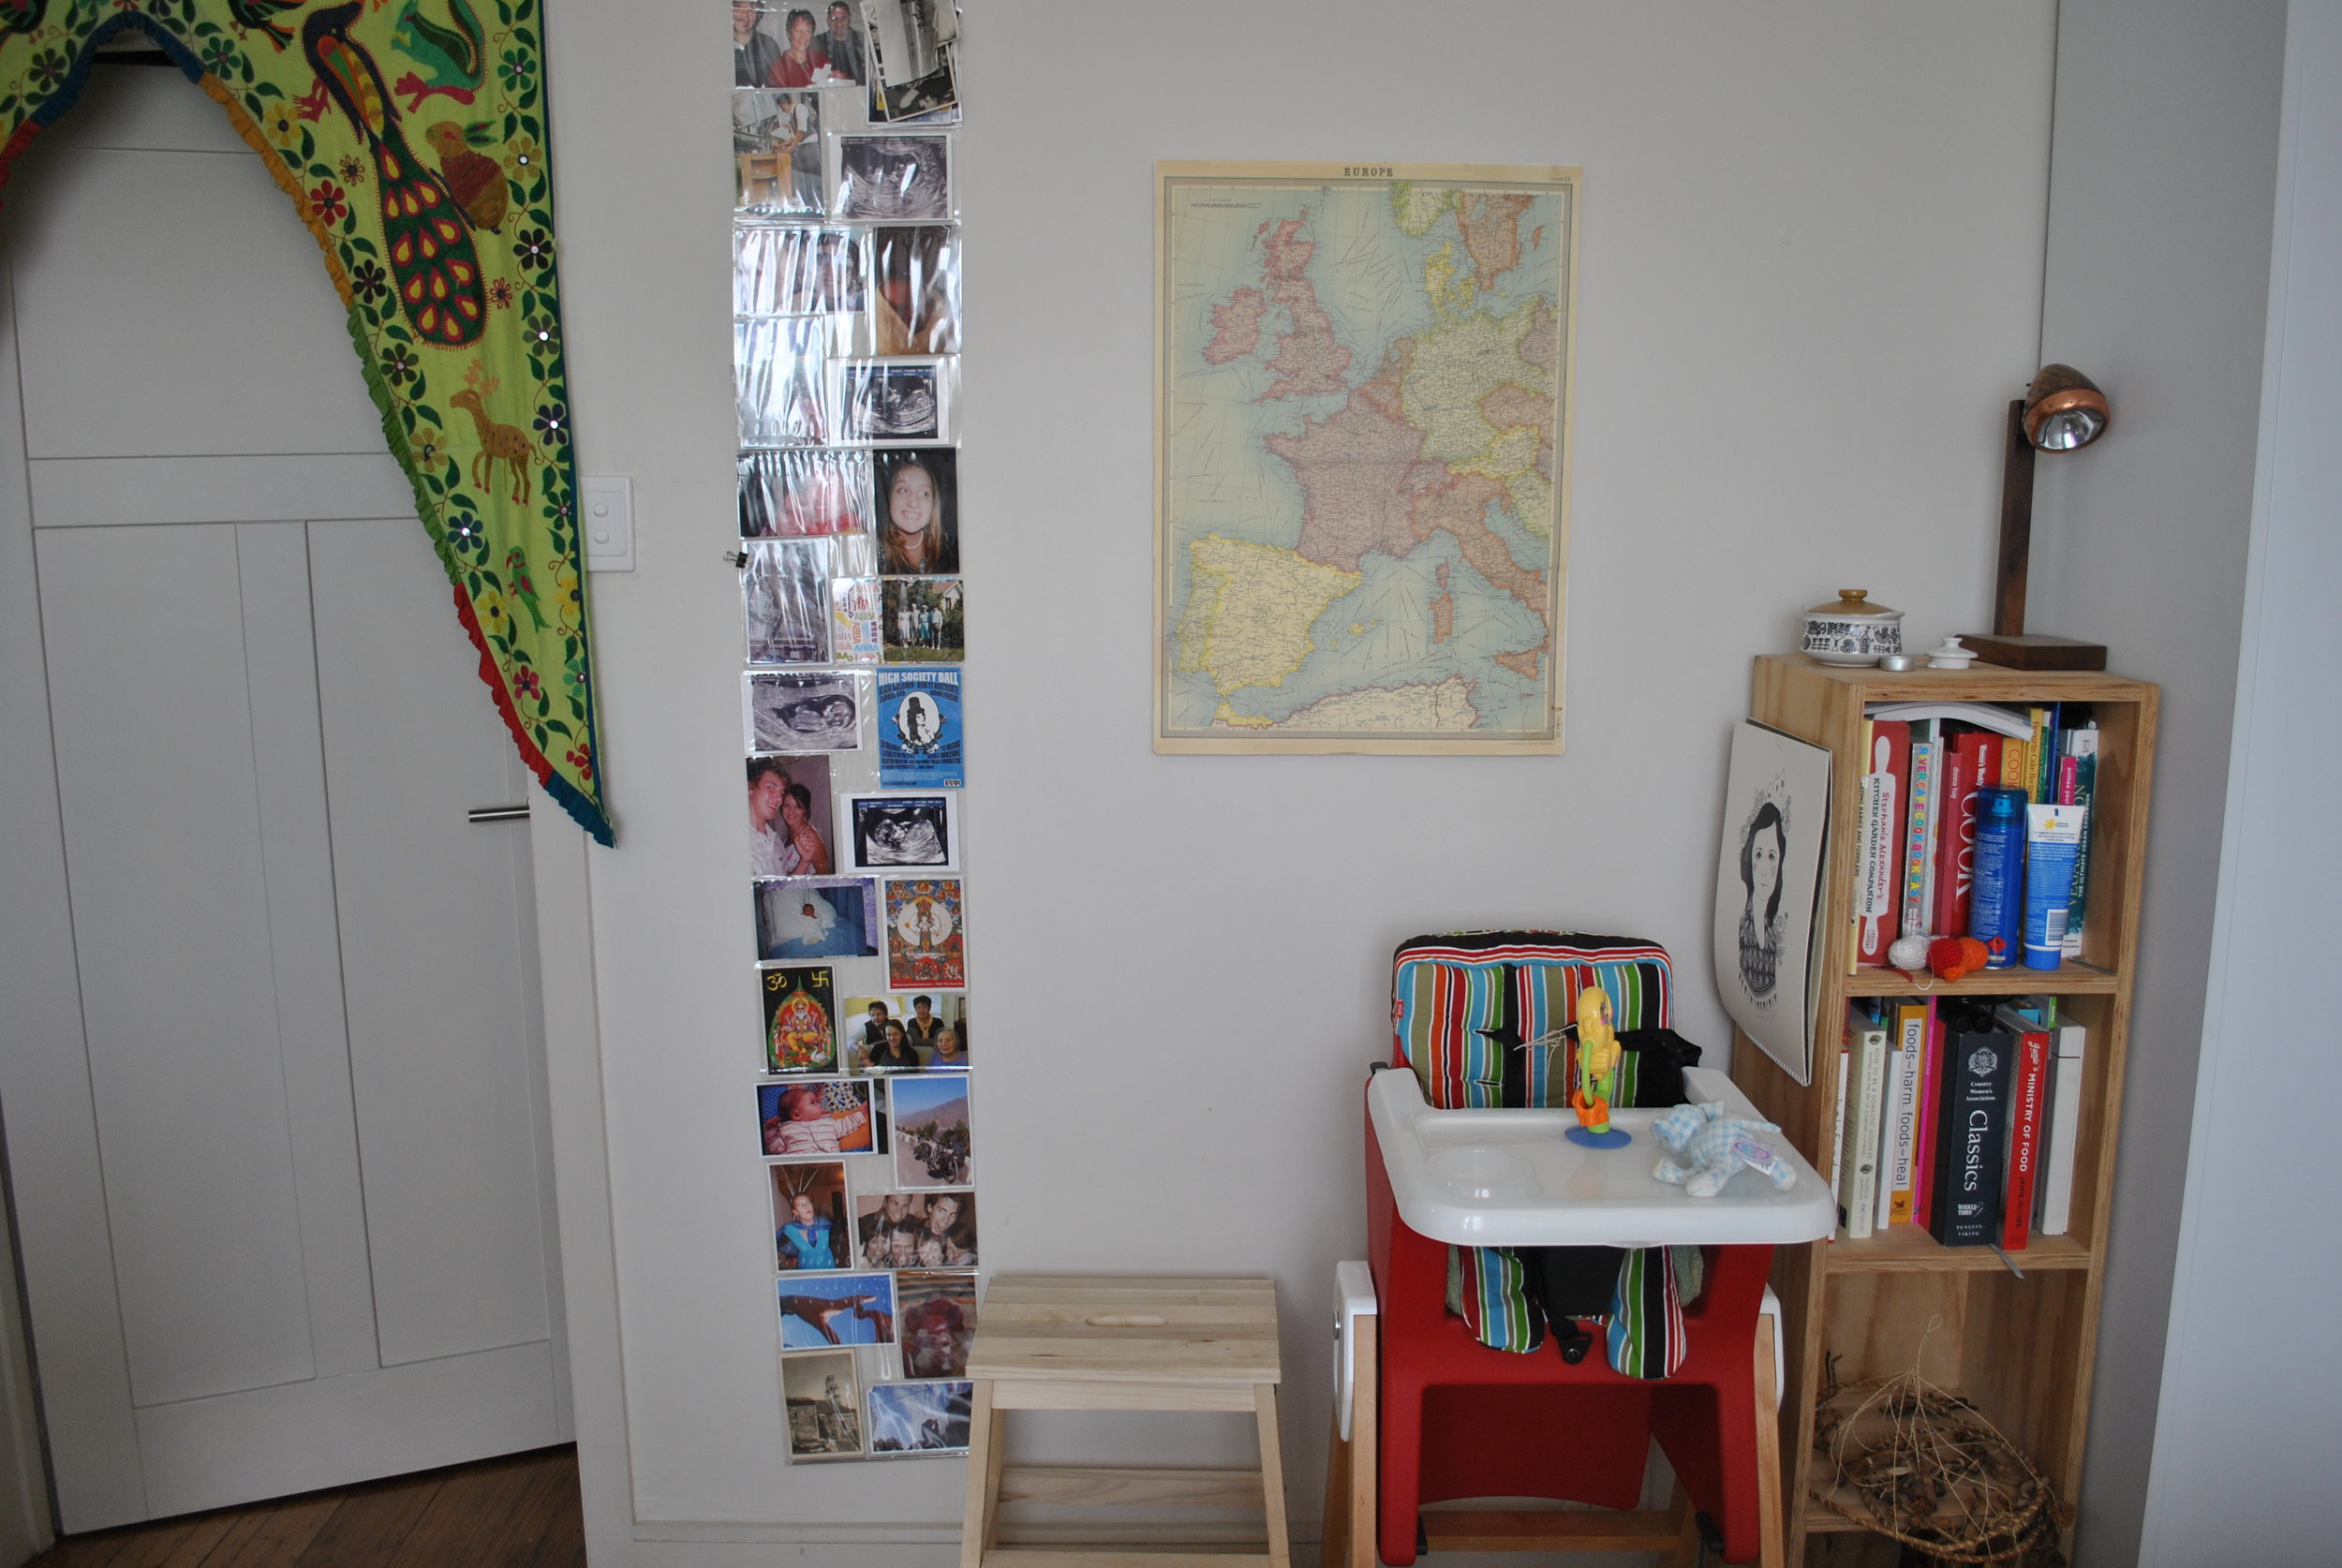 More kitchen photos. The door hanging thing on the right was bought in India, the photo holder thing is from Urban Outfitters and the map is from Zetta Florence.